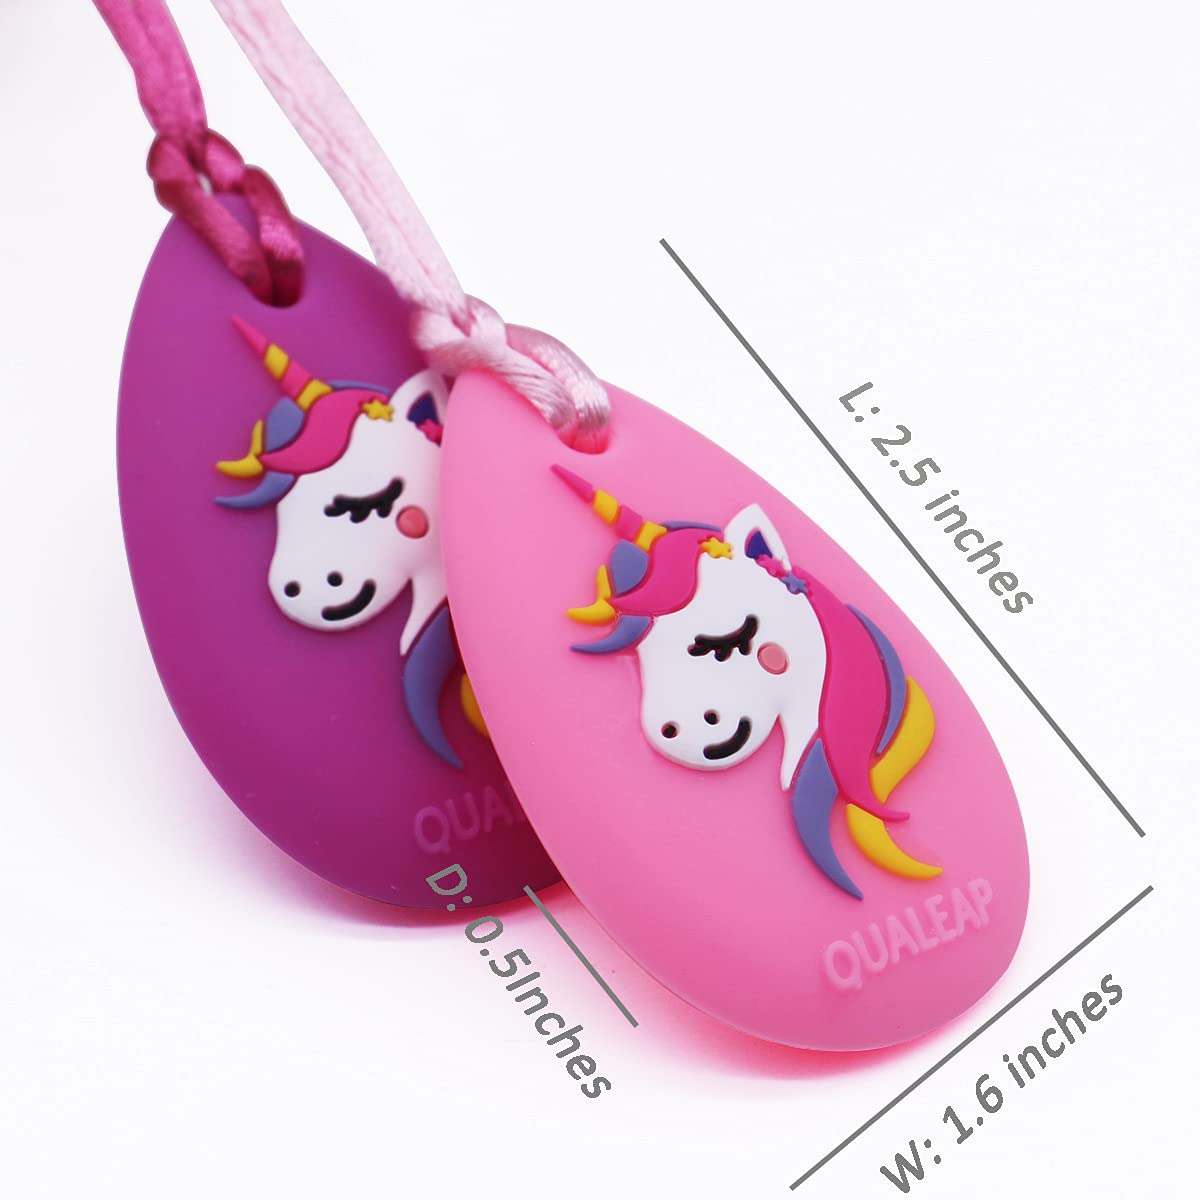 Designed for Chewing Exclusive Autism Sensory Teether Toy 2 Pack - Chewing Necklace Teething Necklace Teether Necklace Chew Toys Teething Toys Unicorn Chew Necklace for Kids Girls